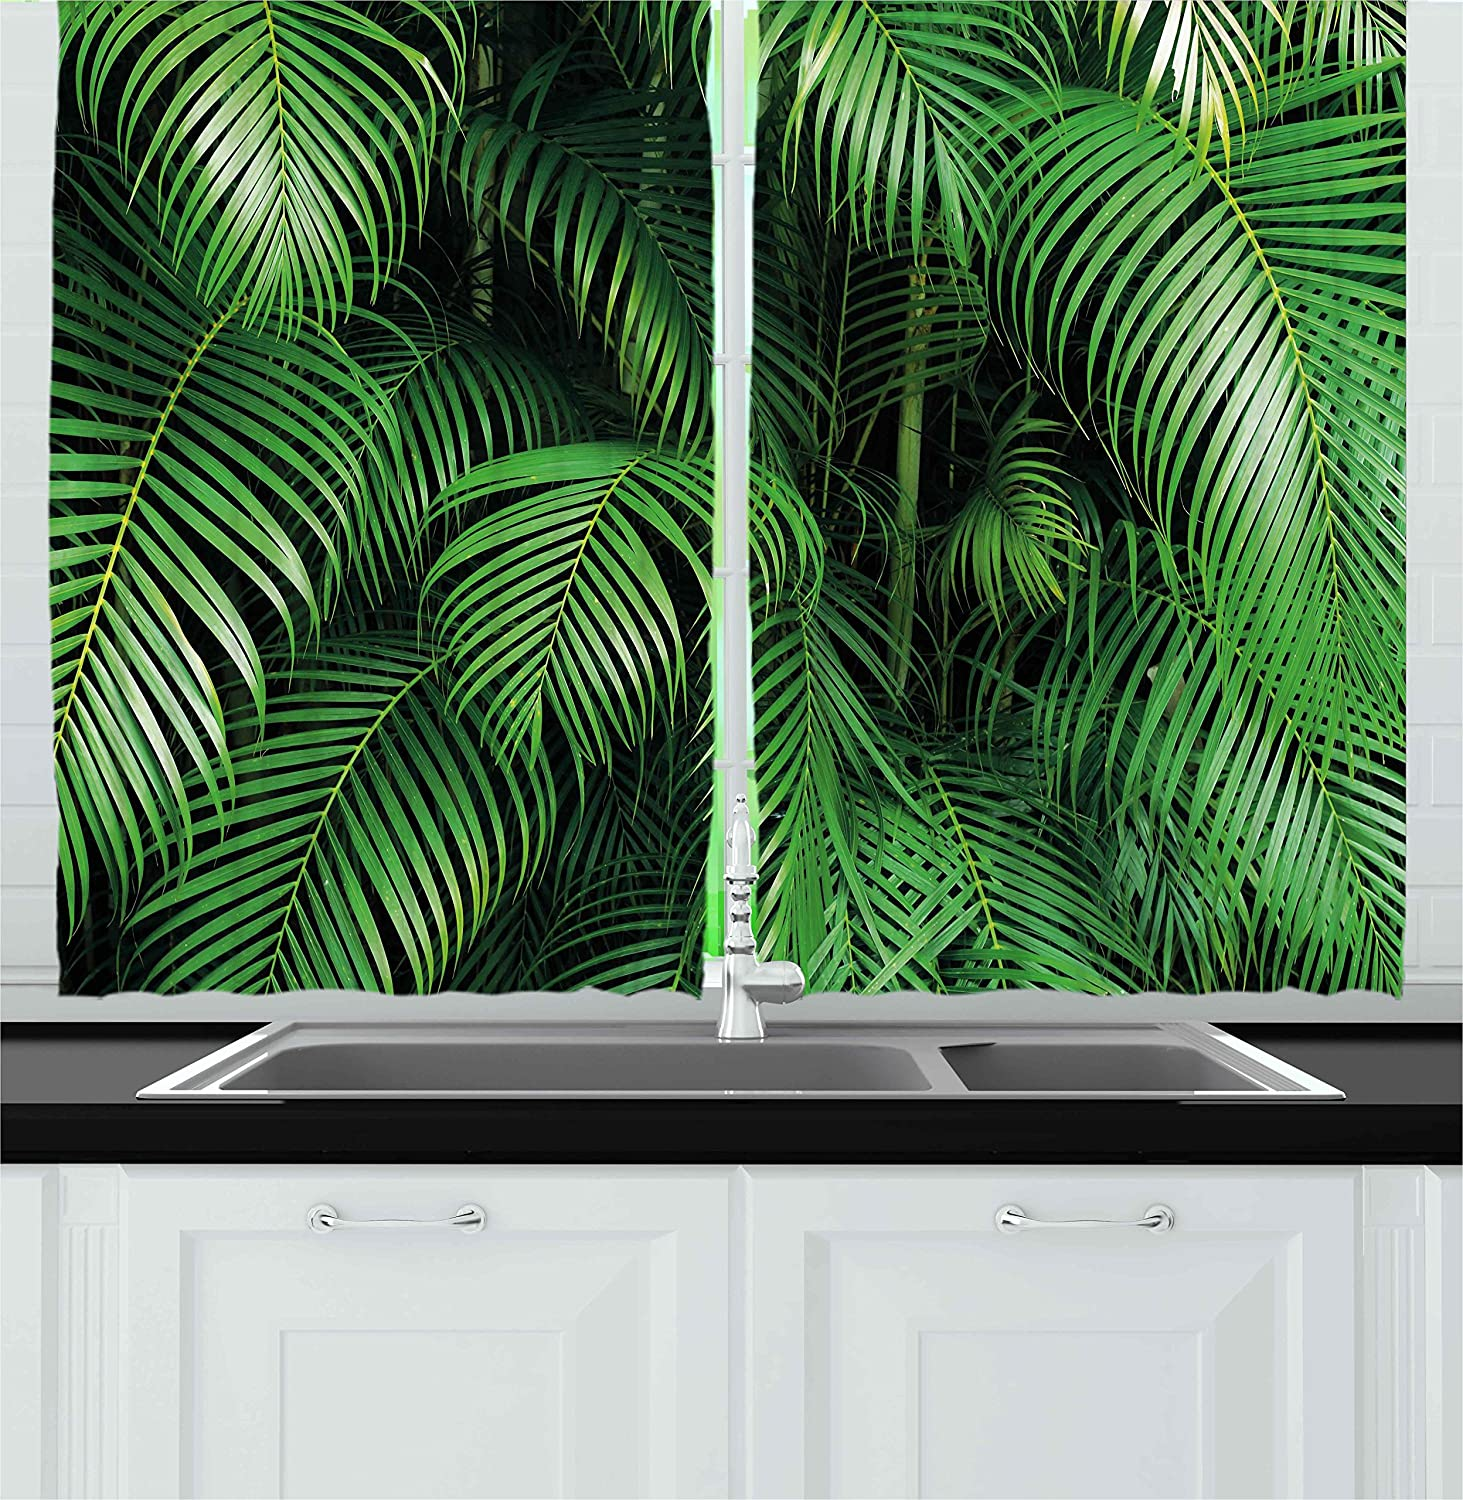 Window Drapes 2 Panels Set for Kitchen Cafe Tropical Exotic Palm Tree Leaves Branches Botanical Photo Jungle Garden Nature Eco Theme Ambesonne Green Kitchen Curtains Green 55W X 39L Inches